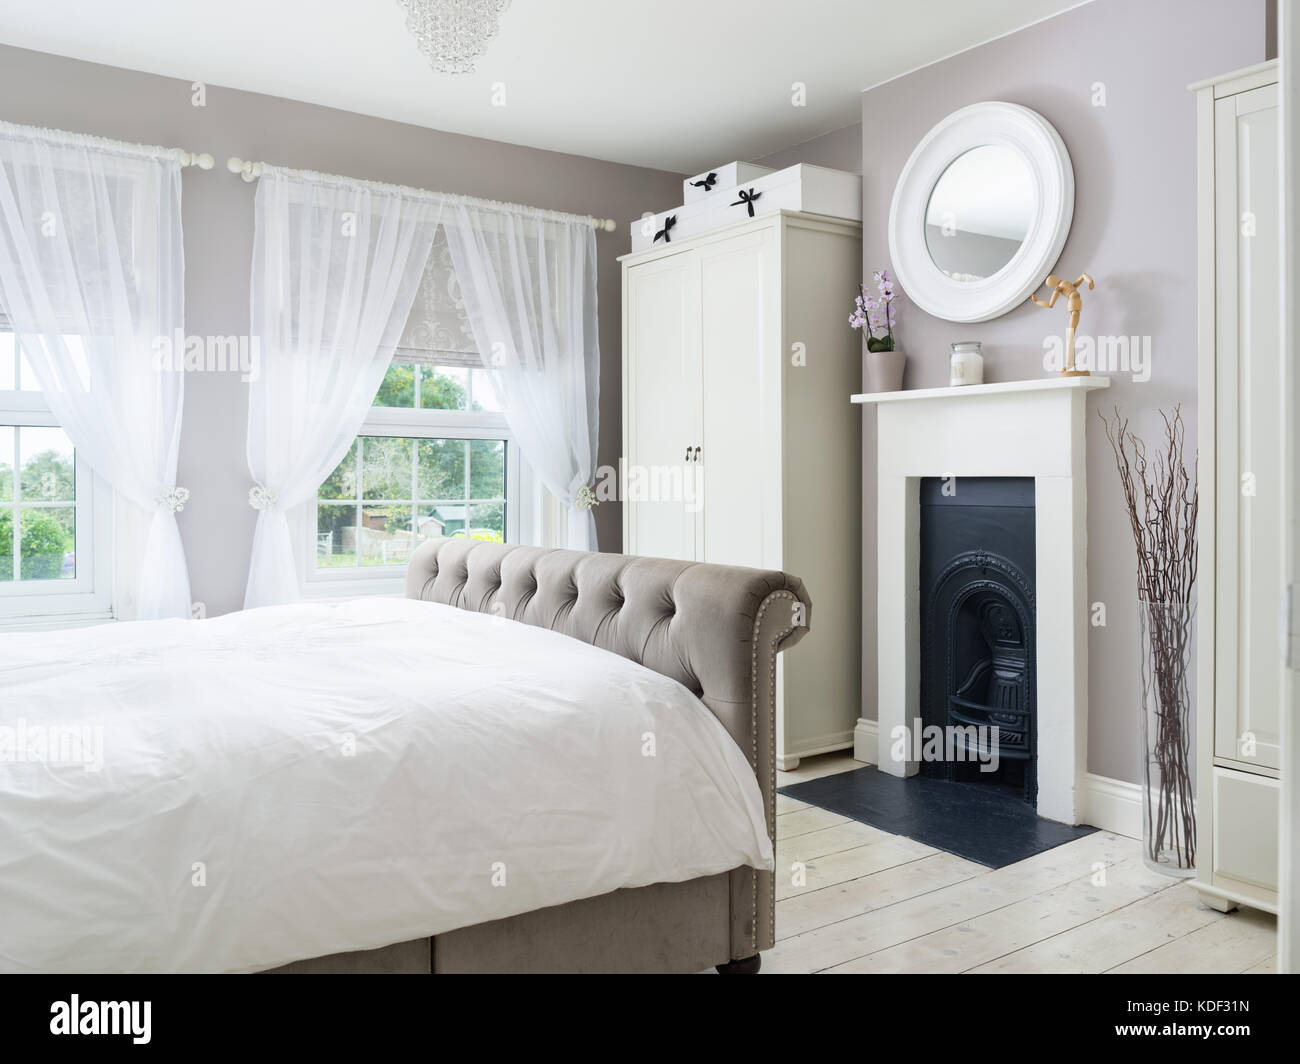 A stylishly decorated bedroom in a refurbished Victorian, UK home. - Stock Image